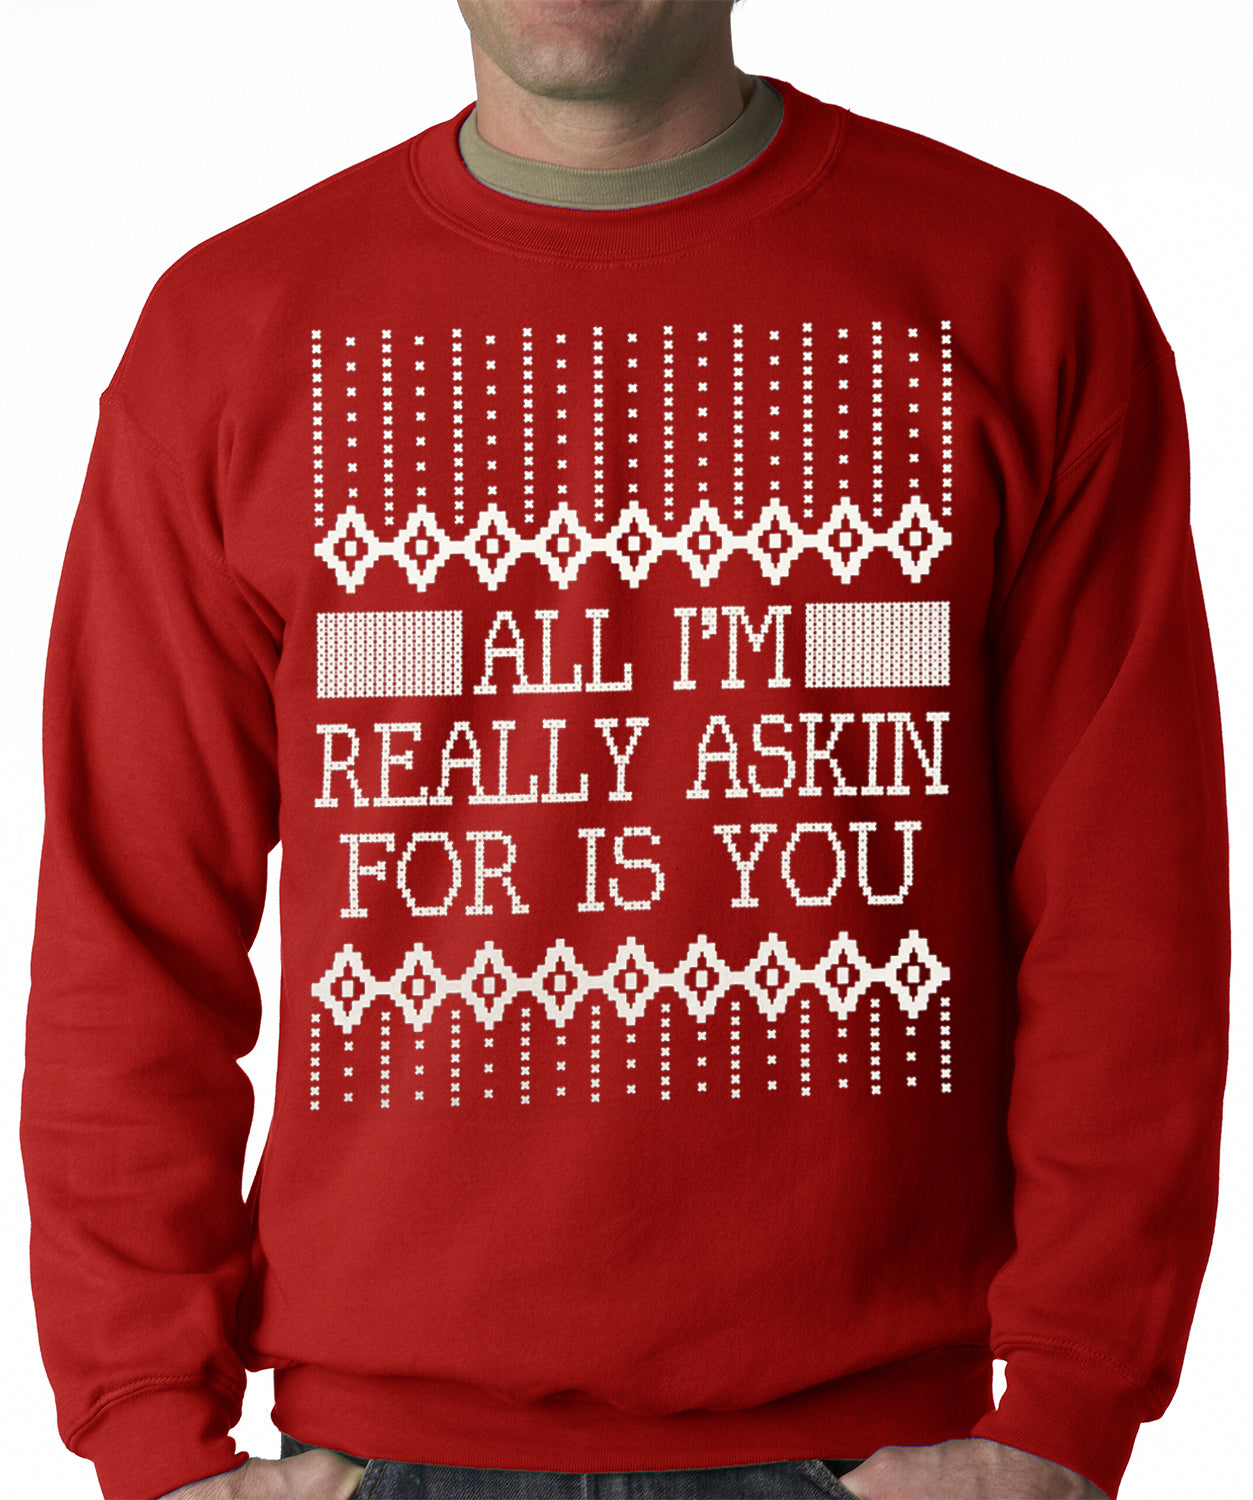 All I'm Asking For is You Adult Crewneck